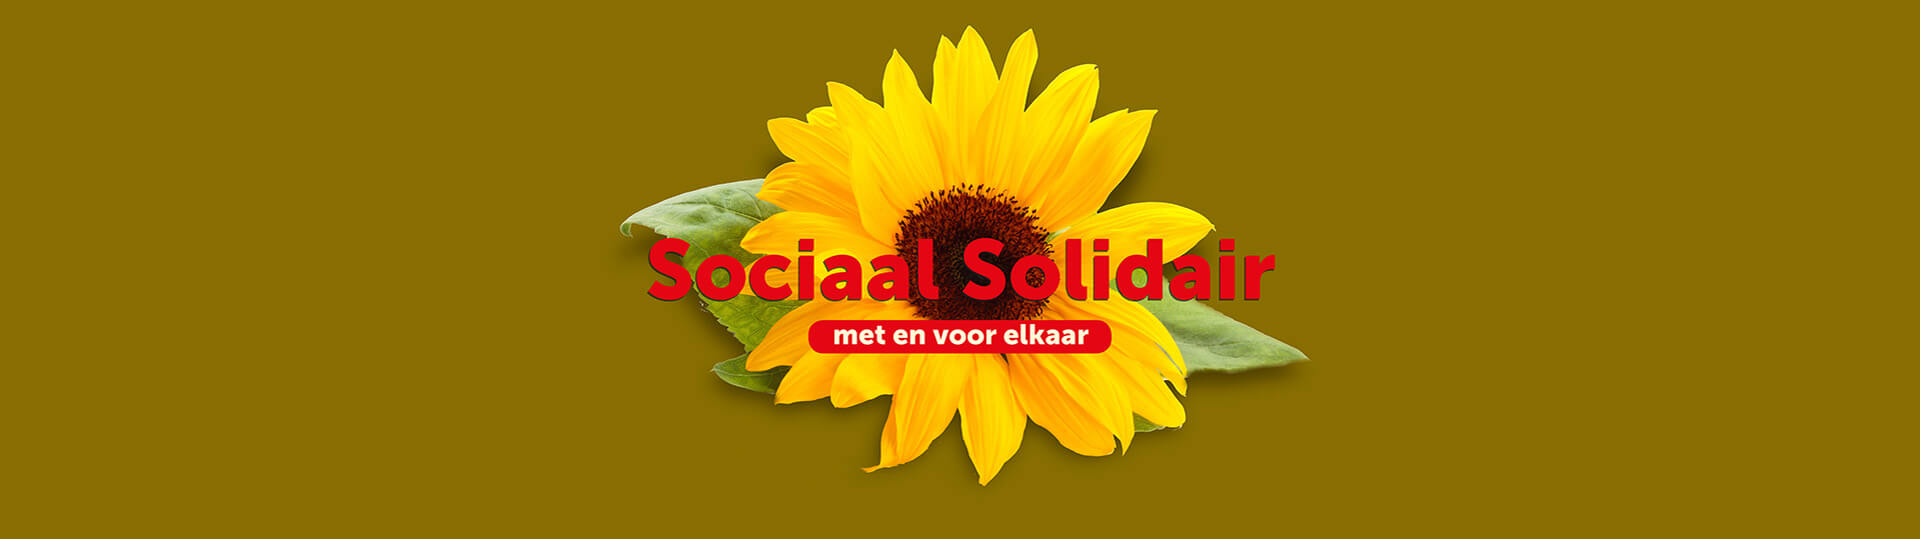 Stichting Sociaal Solidair